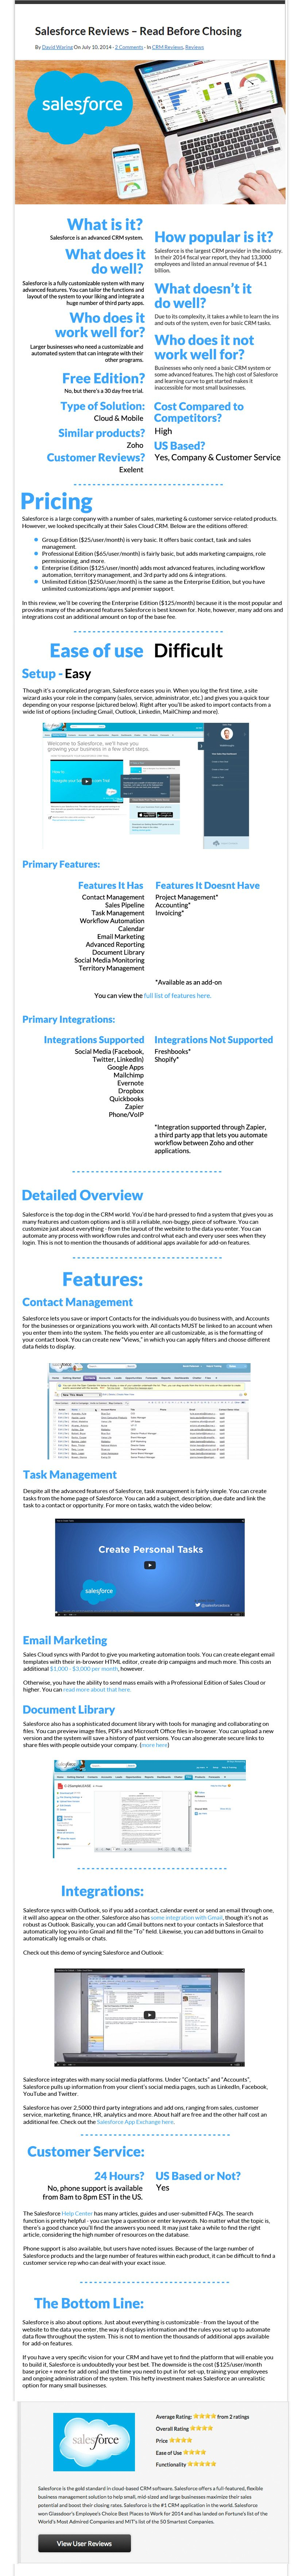 Salesforce-review-mockup 2